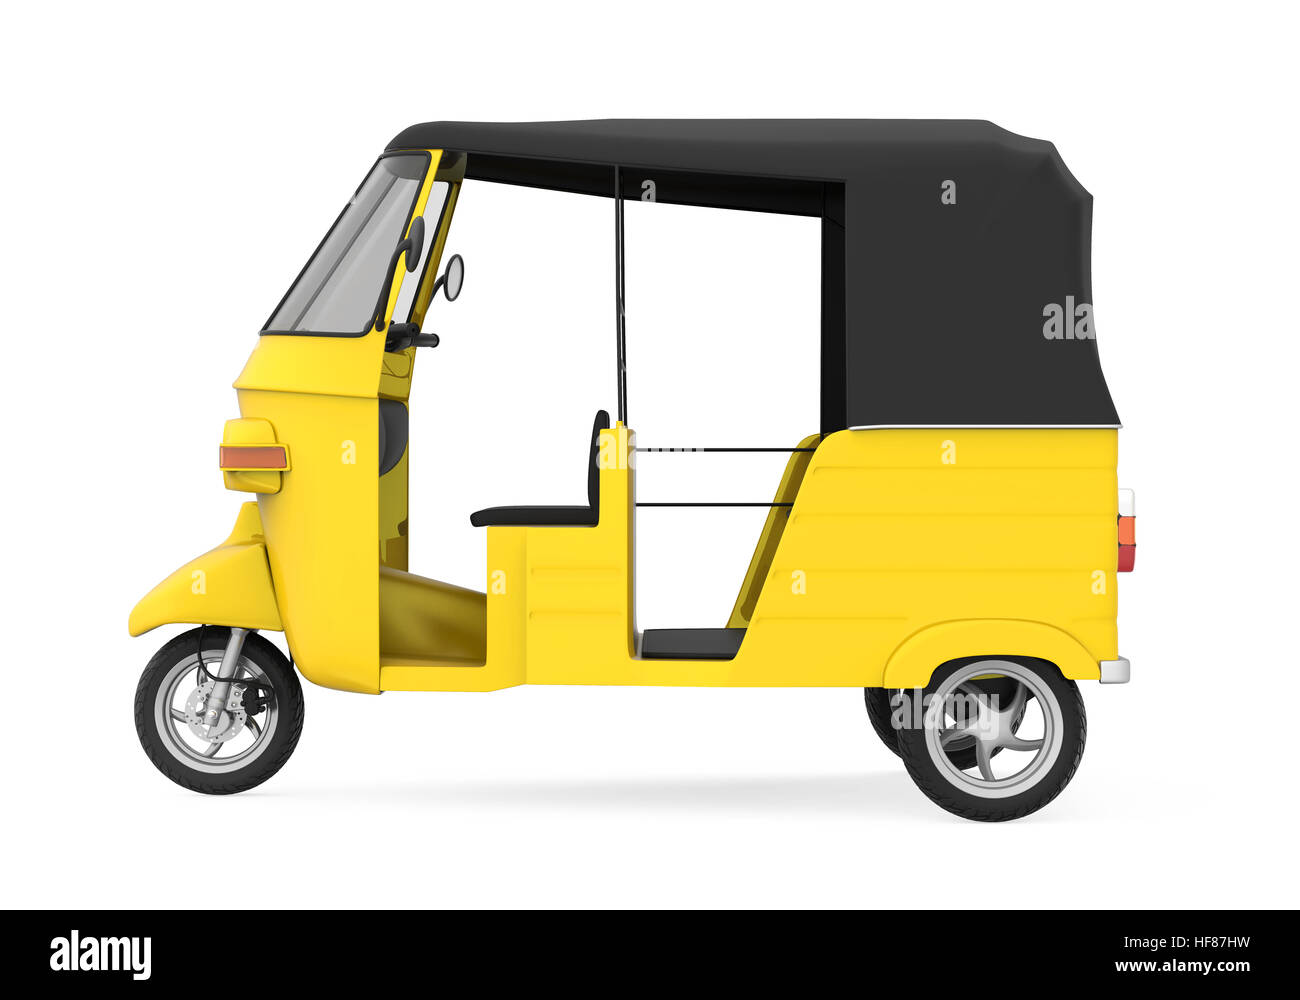 yellow car tricycle stockfotos yellow car tricycle. Black Bedroom Furniture Sets. Home Design Ideas